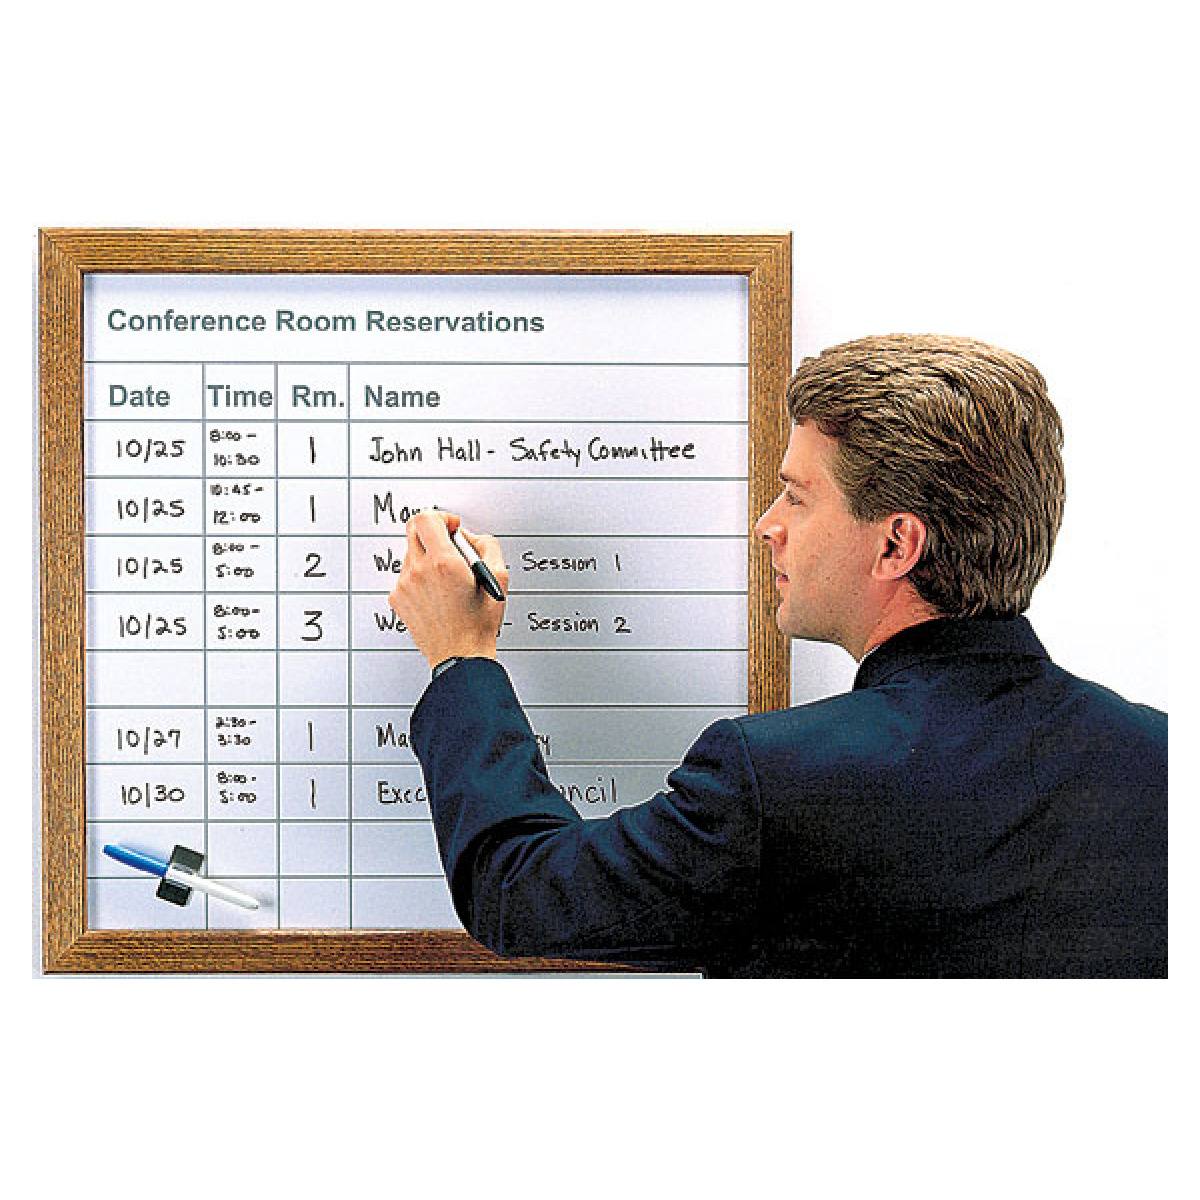 room and equipment reservation scheduling board